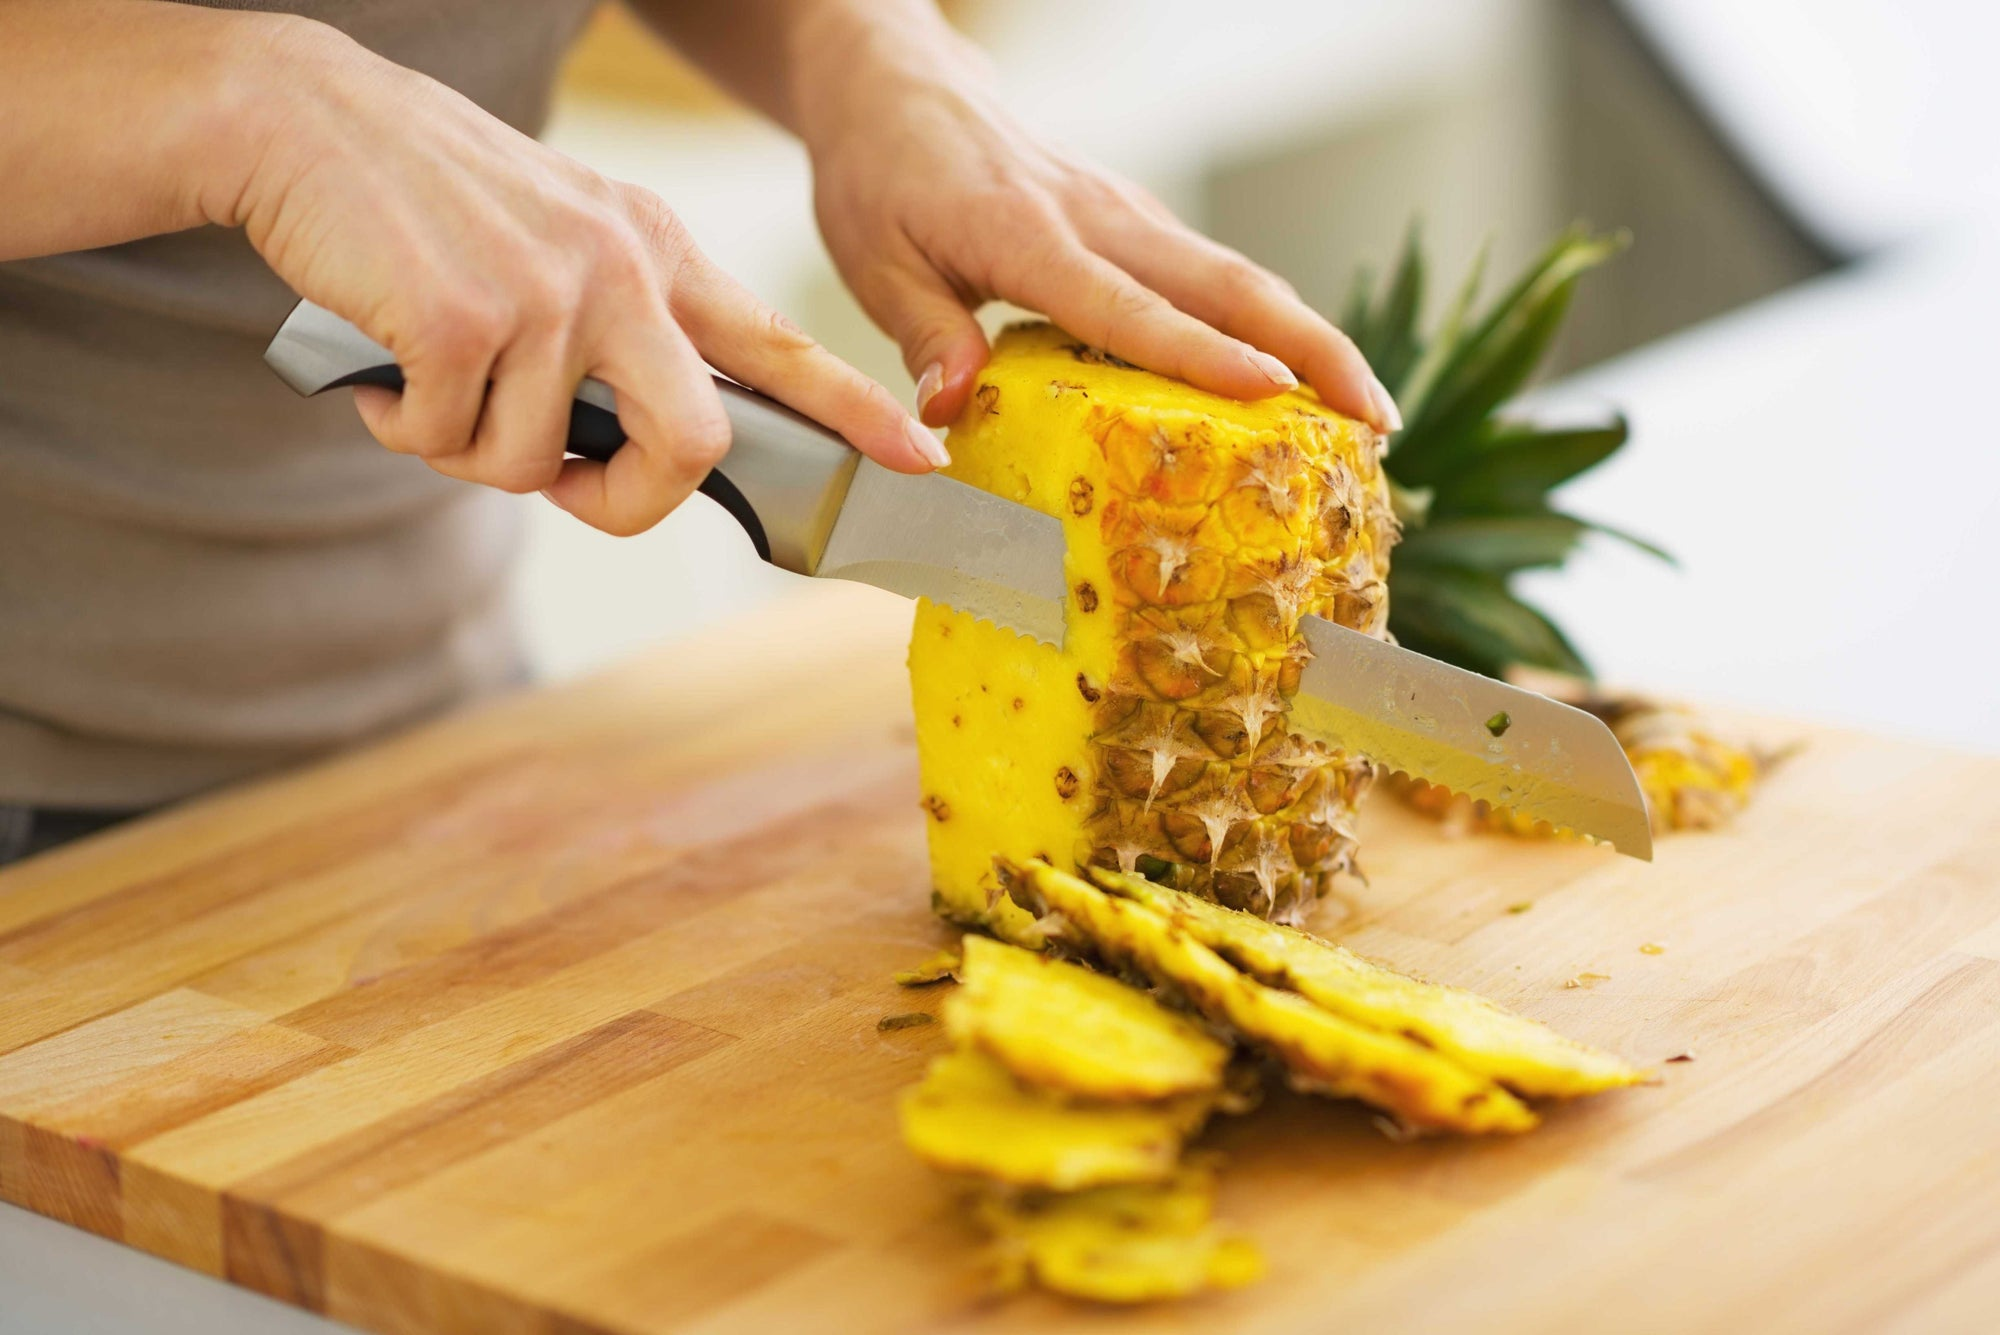 Five Great Health Benefits of Pineapples